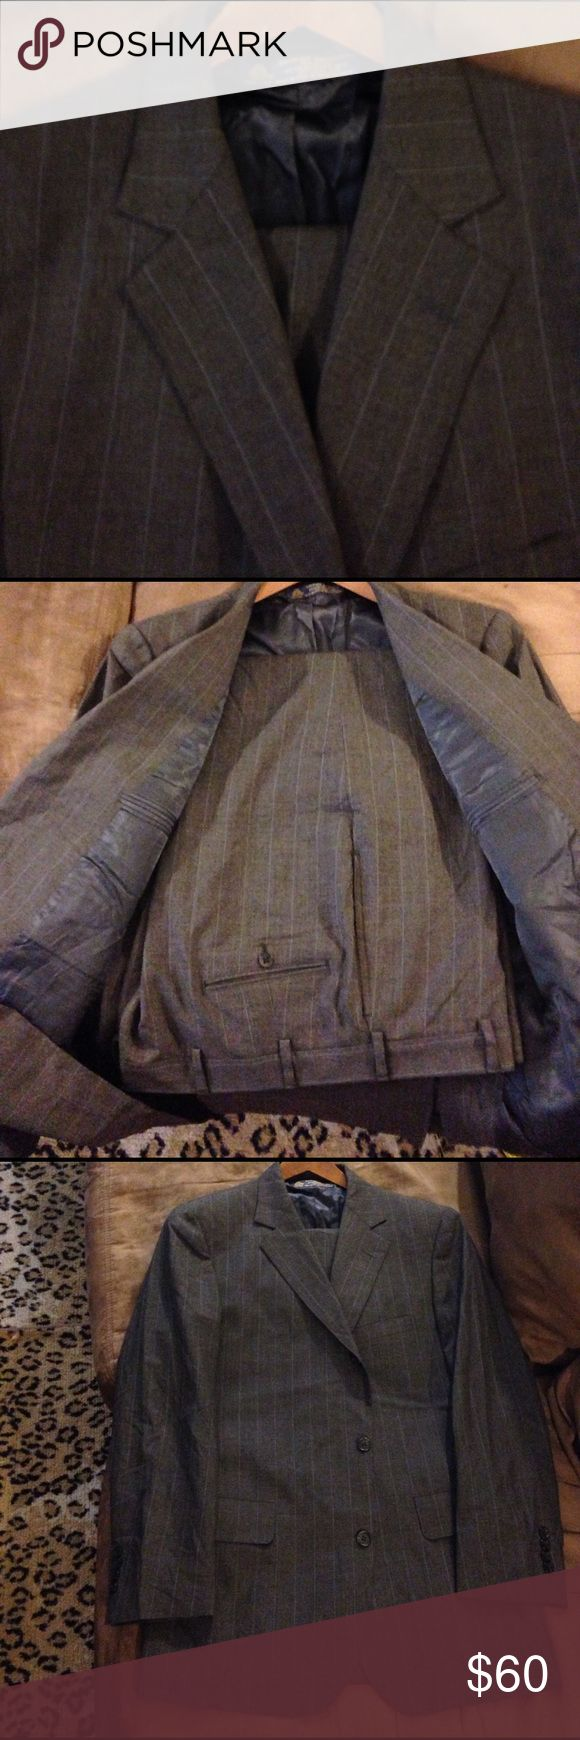 Brooks Brothers Grey w/ Blue Pinstripe Suit 41R Brooks Brothers Grey with Blue Pinstripe Suit size 41R Regular, 3 Button/ Roll 2 Button and Single vented! Pants are a size 36x32, Flat Front and Plain Bottom! Great condition! Please make offers and bundle! Brooks Brothers Suits & Blazers Suits